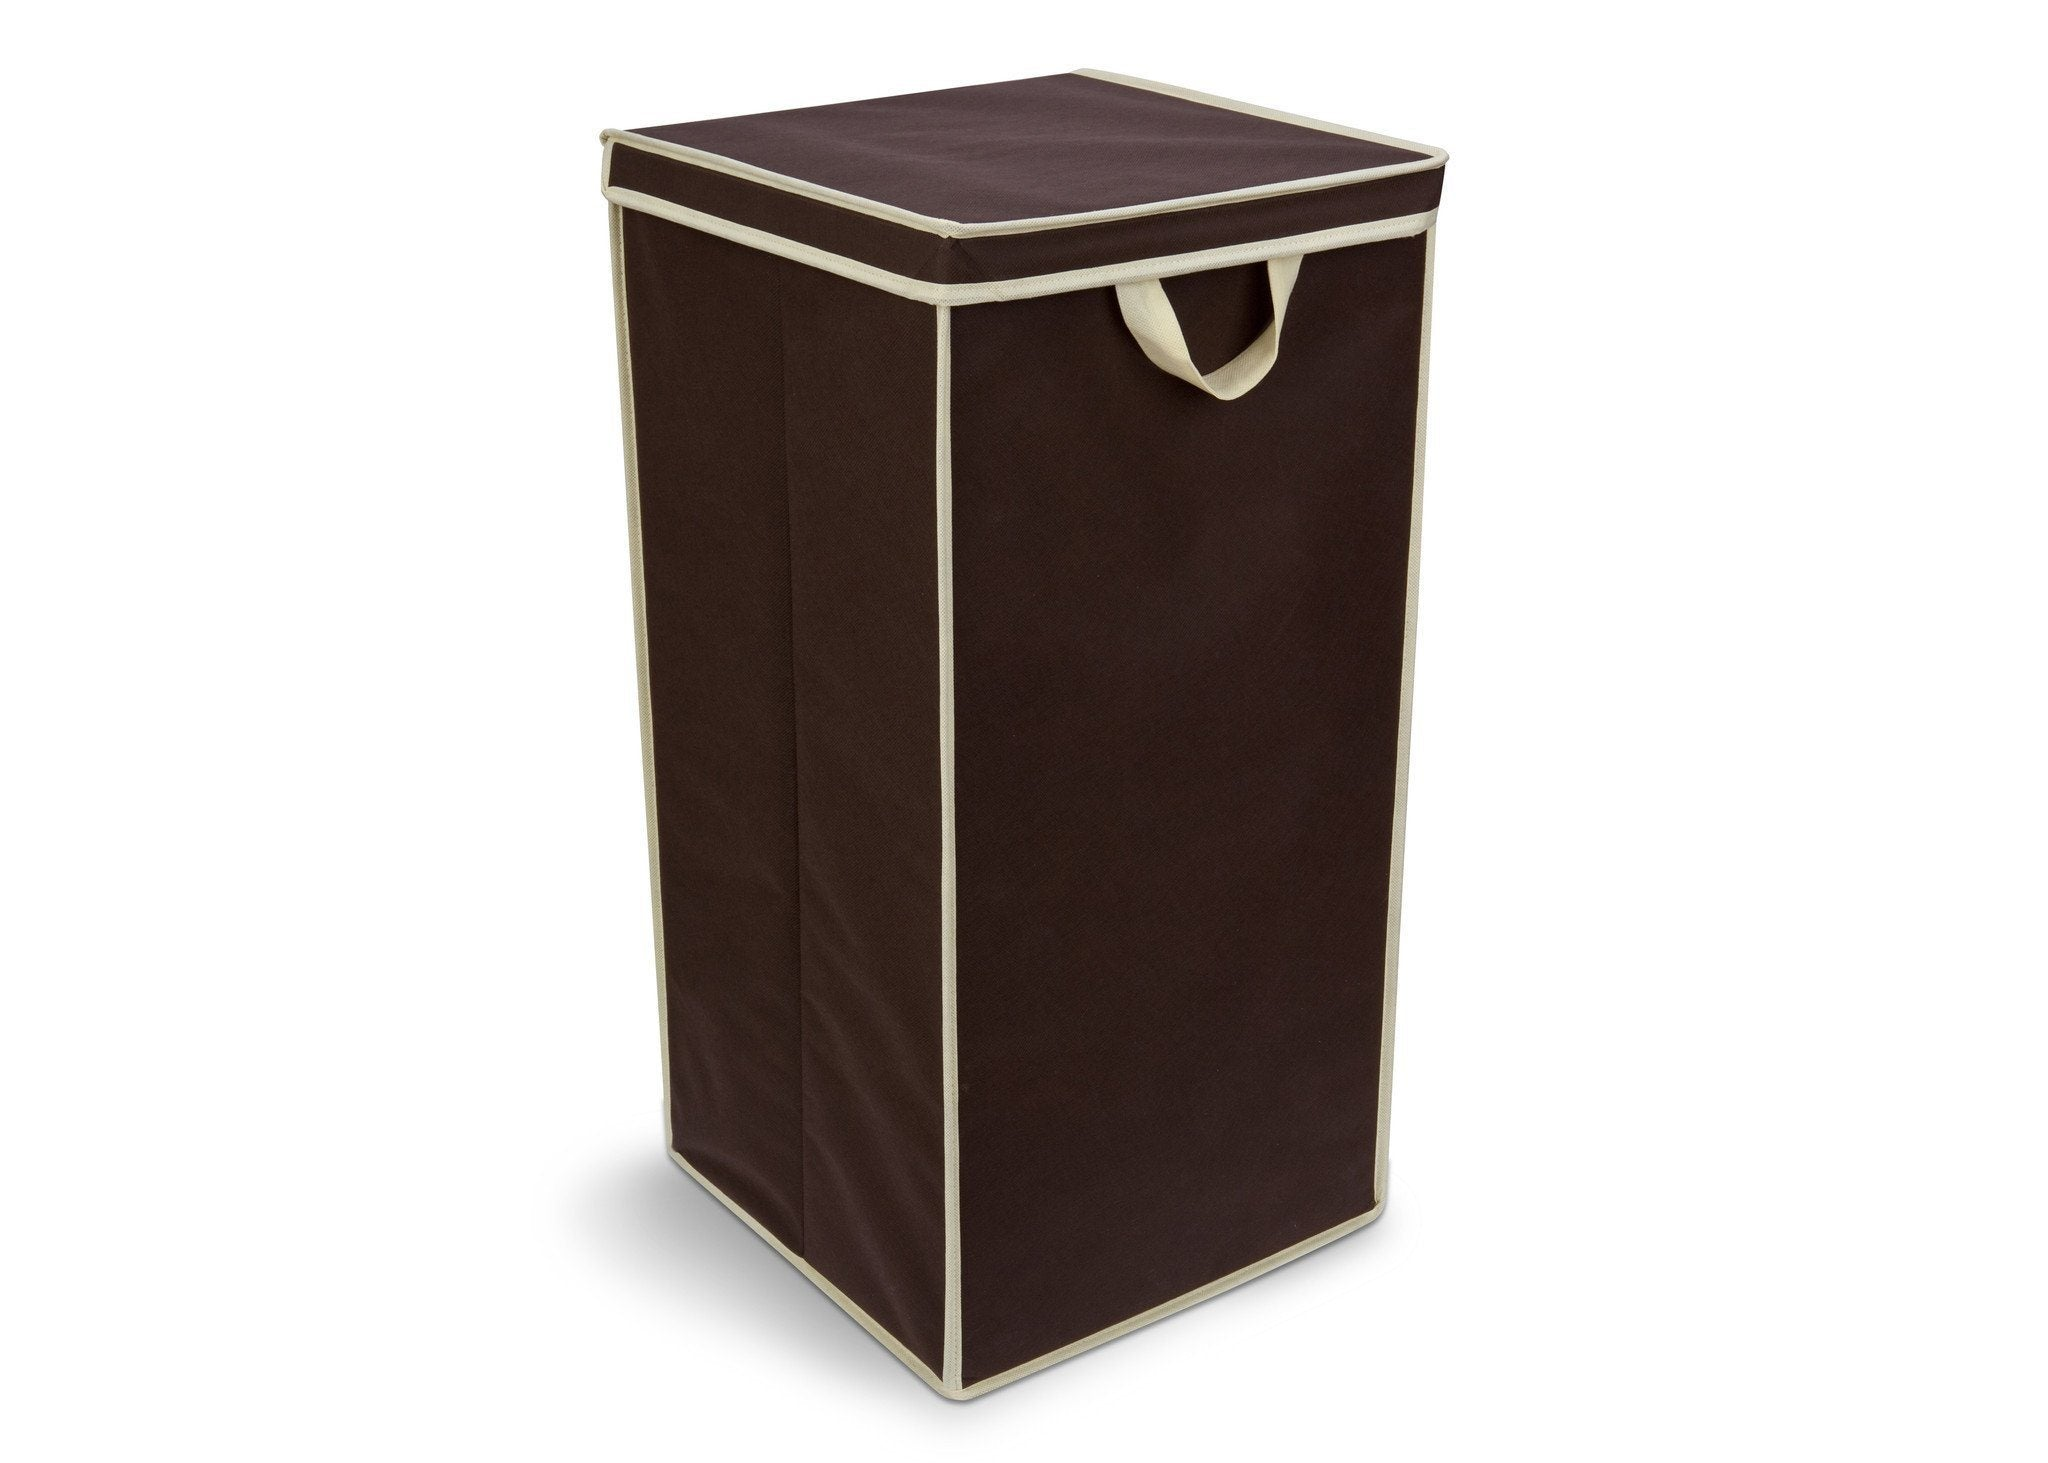 Delta Childern Chocolate (204) Tall Hamper, Side View a1a